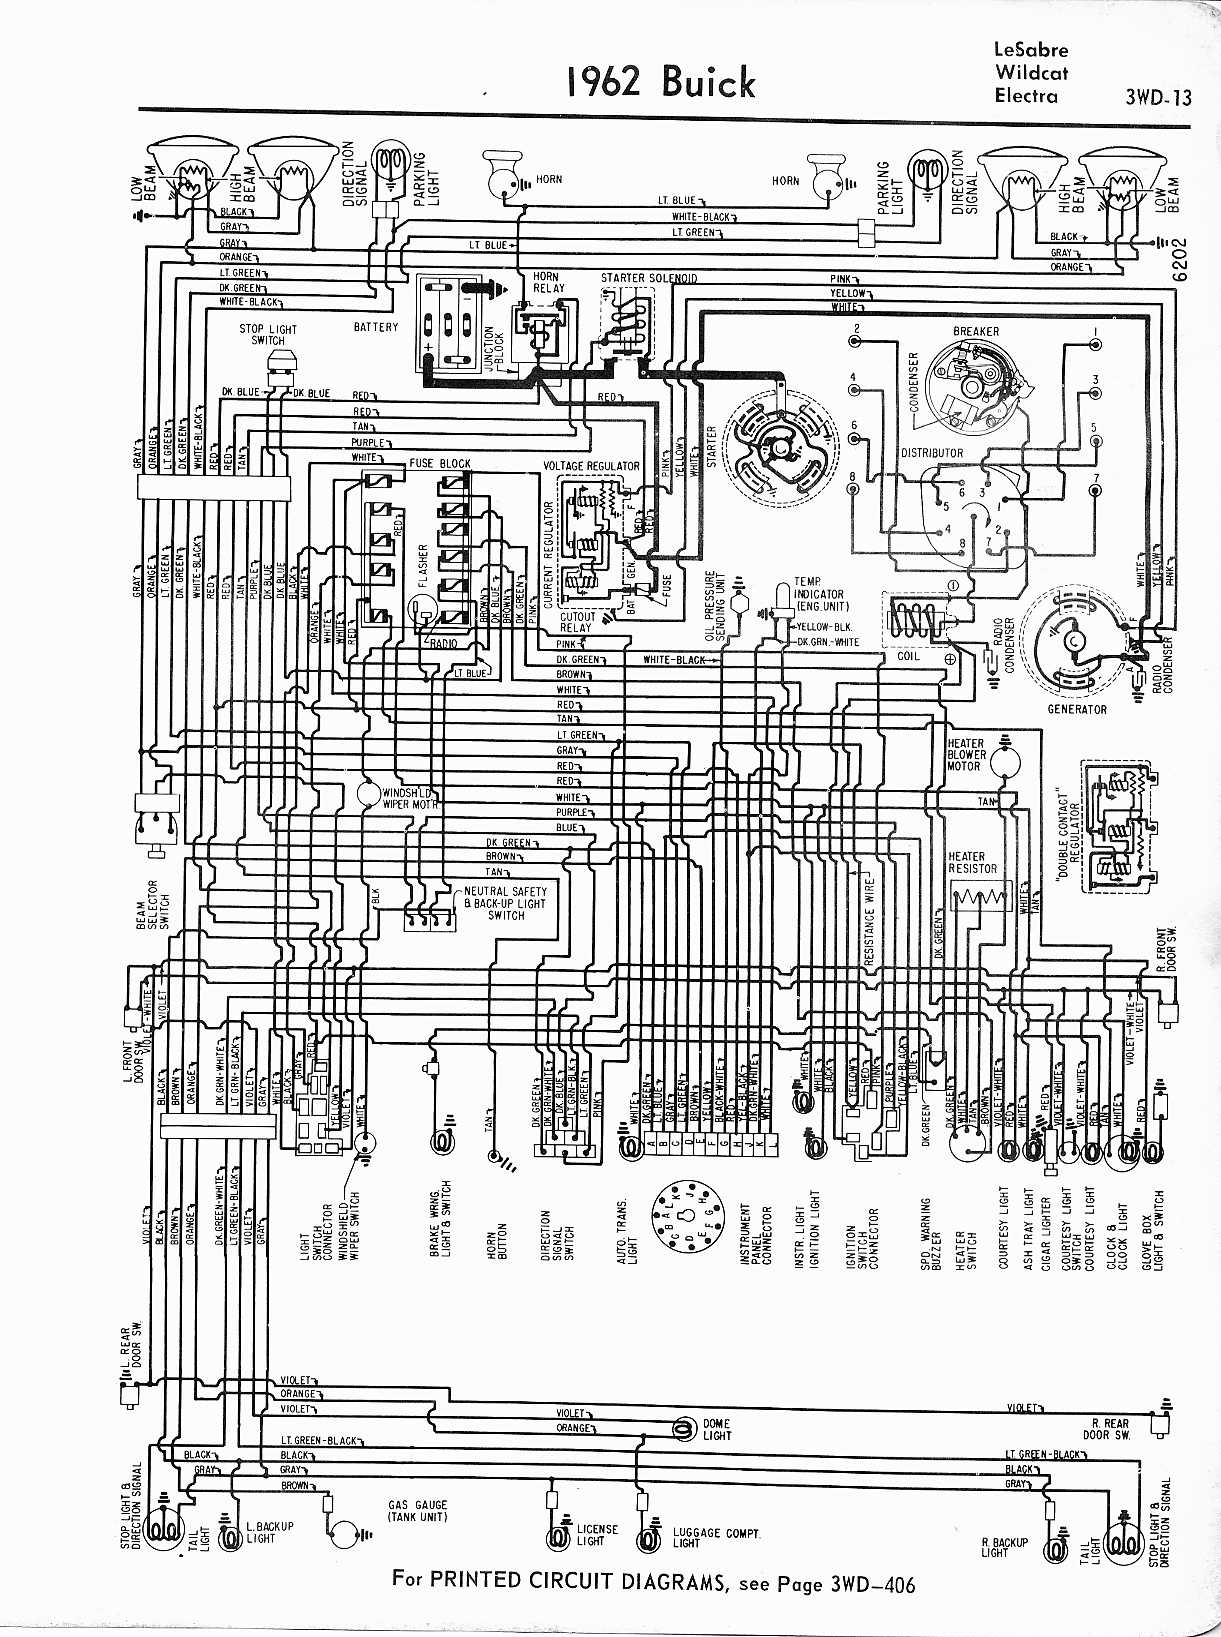 1954 cadillac wiring diagrams house wiring diagram symbols u2022 rh maxturner co Fisher-Price Cadillac Wiring-Diagram Fisher-Price Cadillac Wiring-Diagram